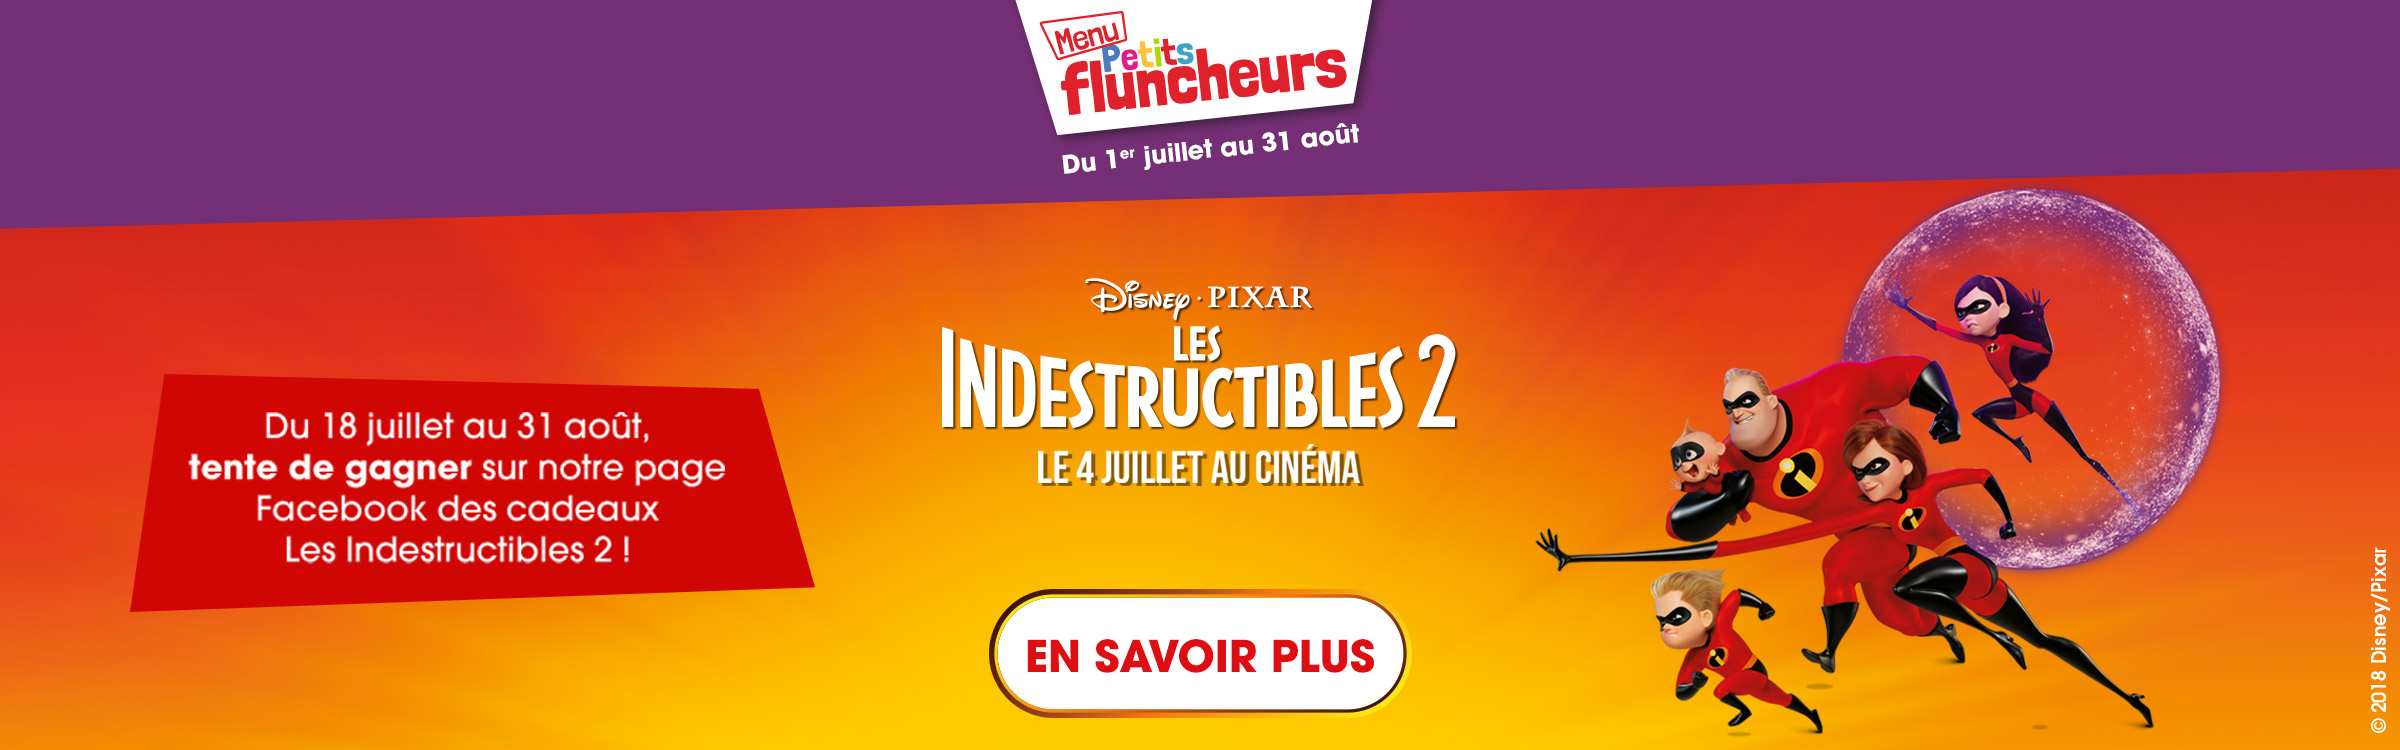 indestructibles petits fluncheurs